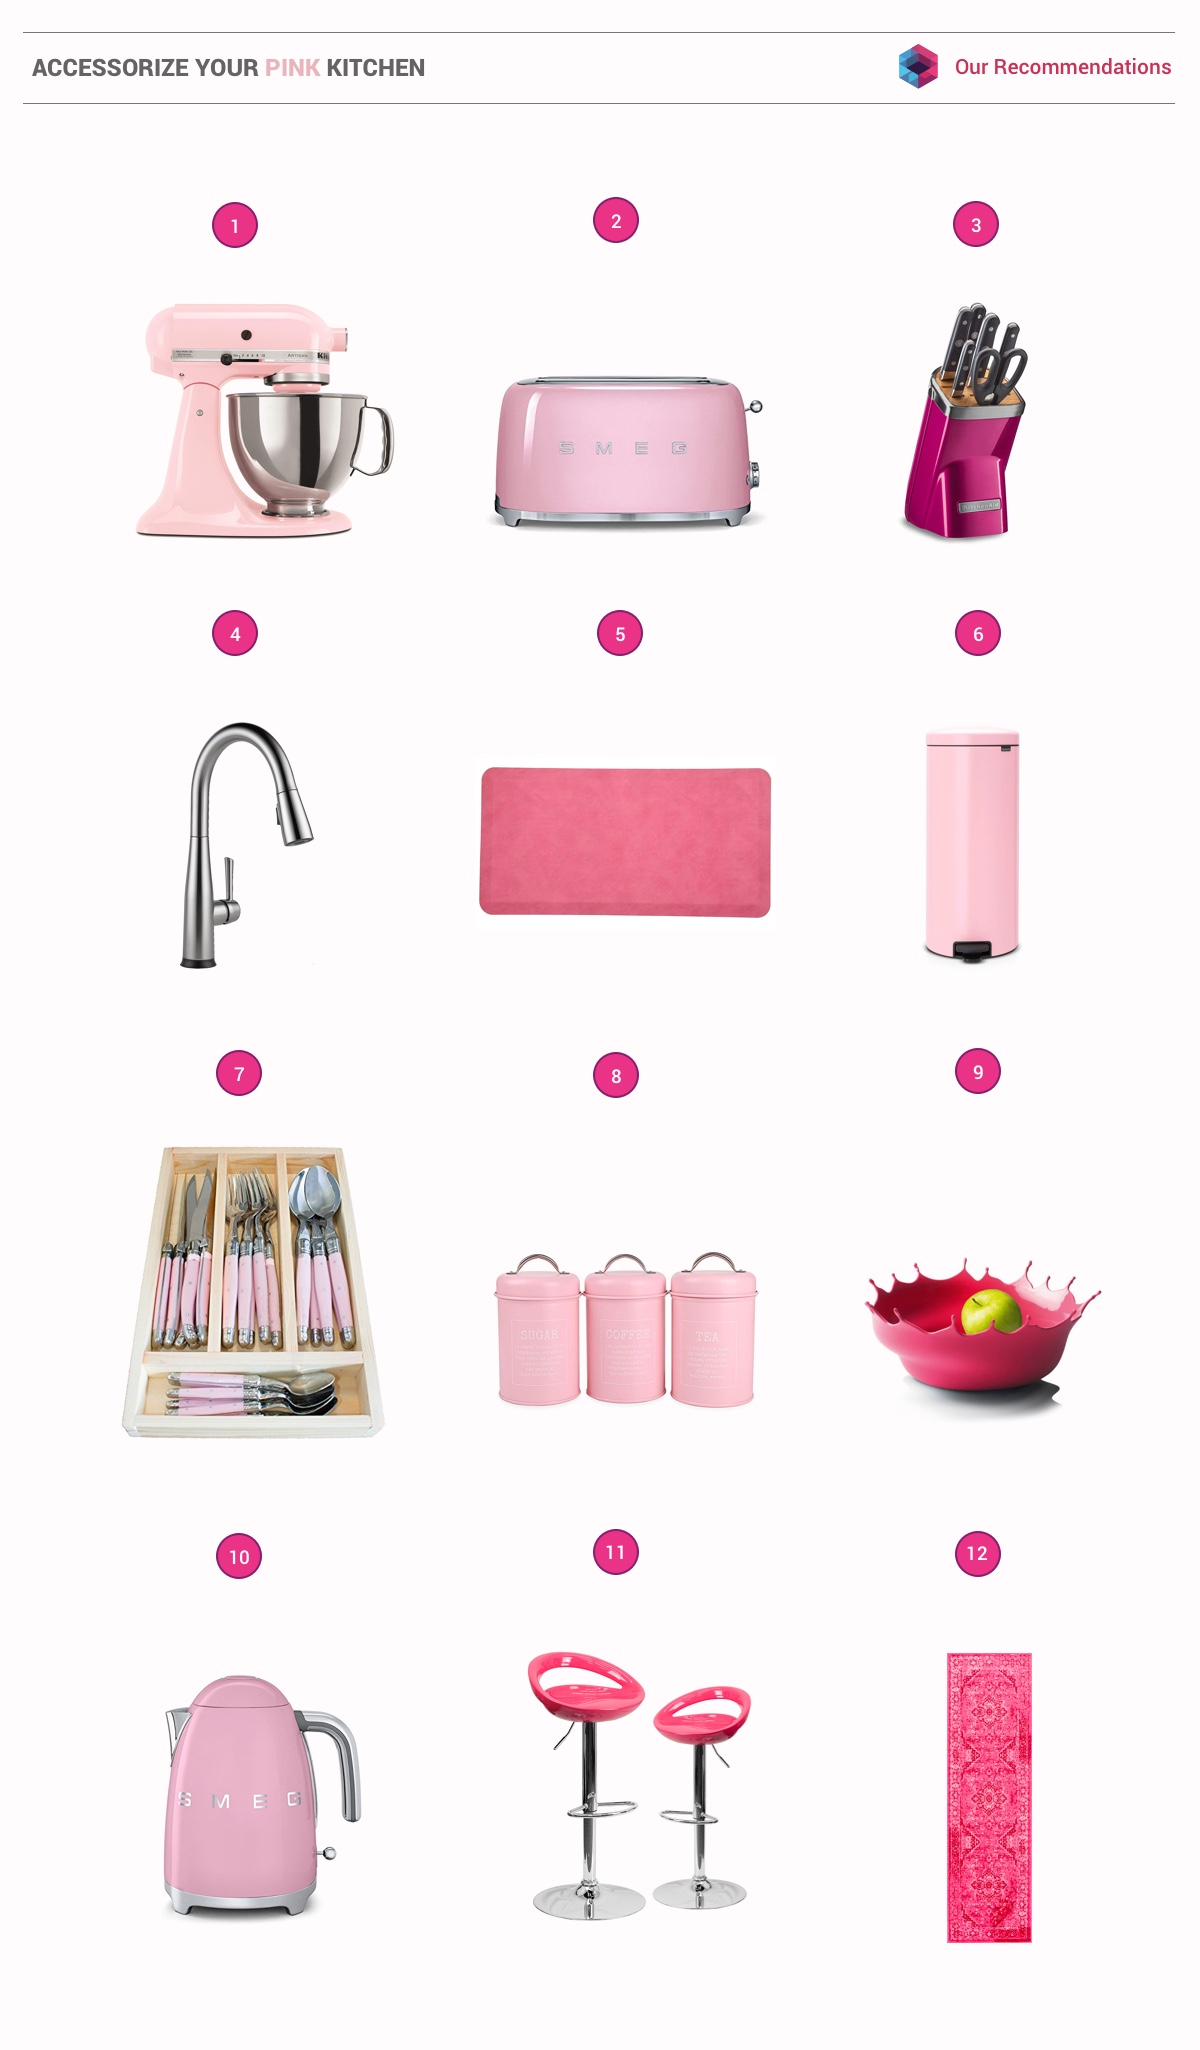 51 Inspirational Pink Kitchens With Tips Amp Accessories To